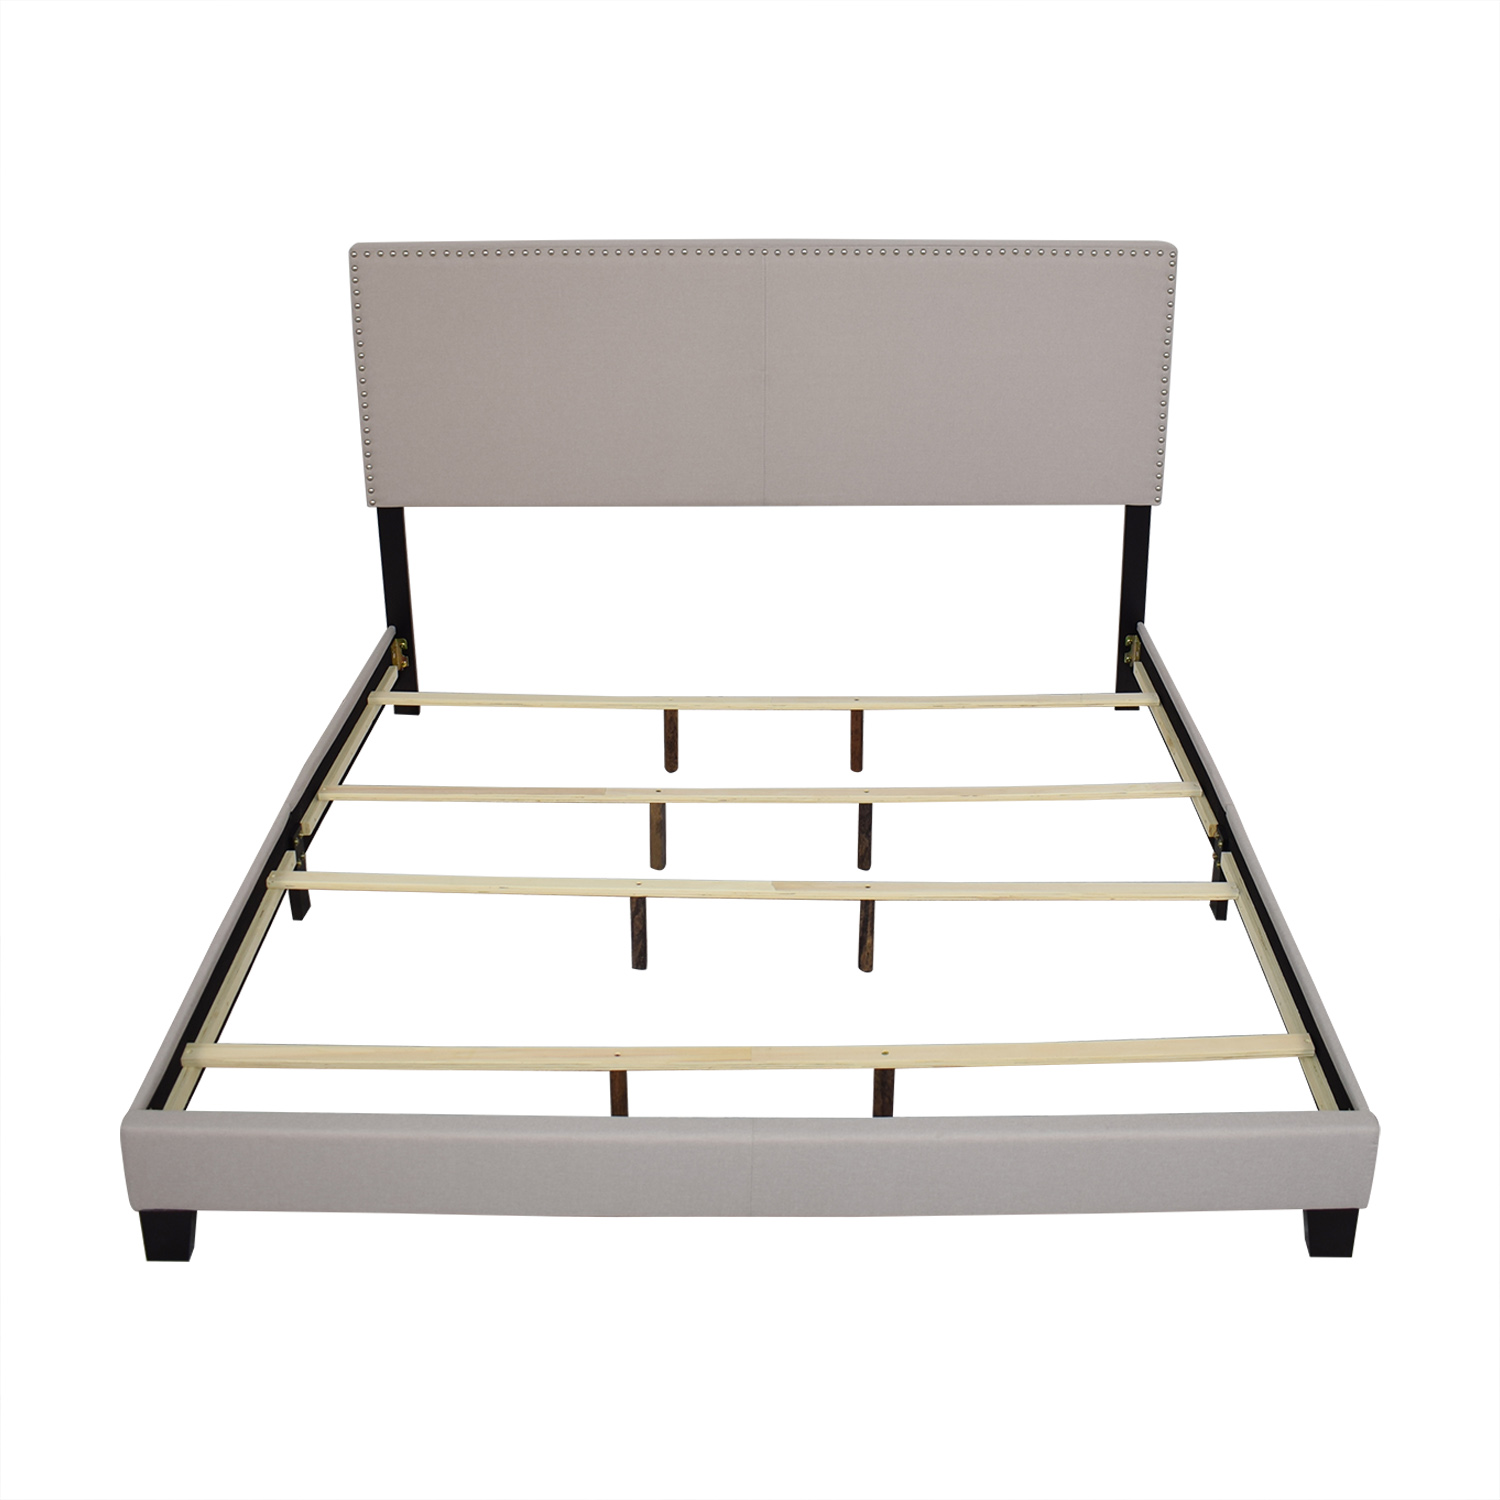 Raymour & Flanigan Platform King Linen Bed Raymour & Flanigan